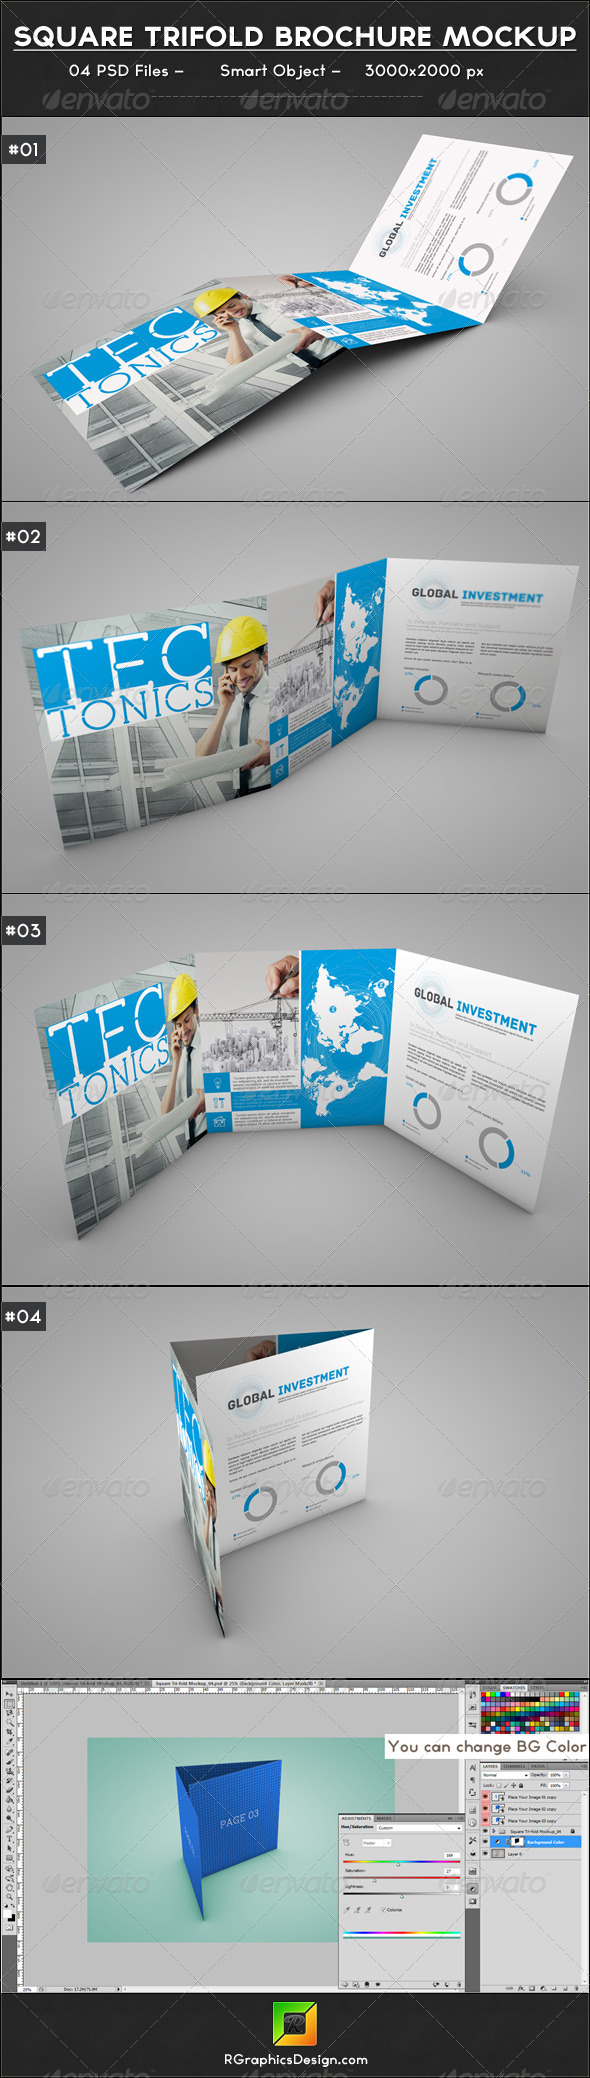 GraphicRiver Square Trifold Brochure Mockup 6646052